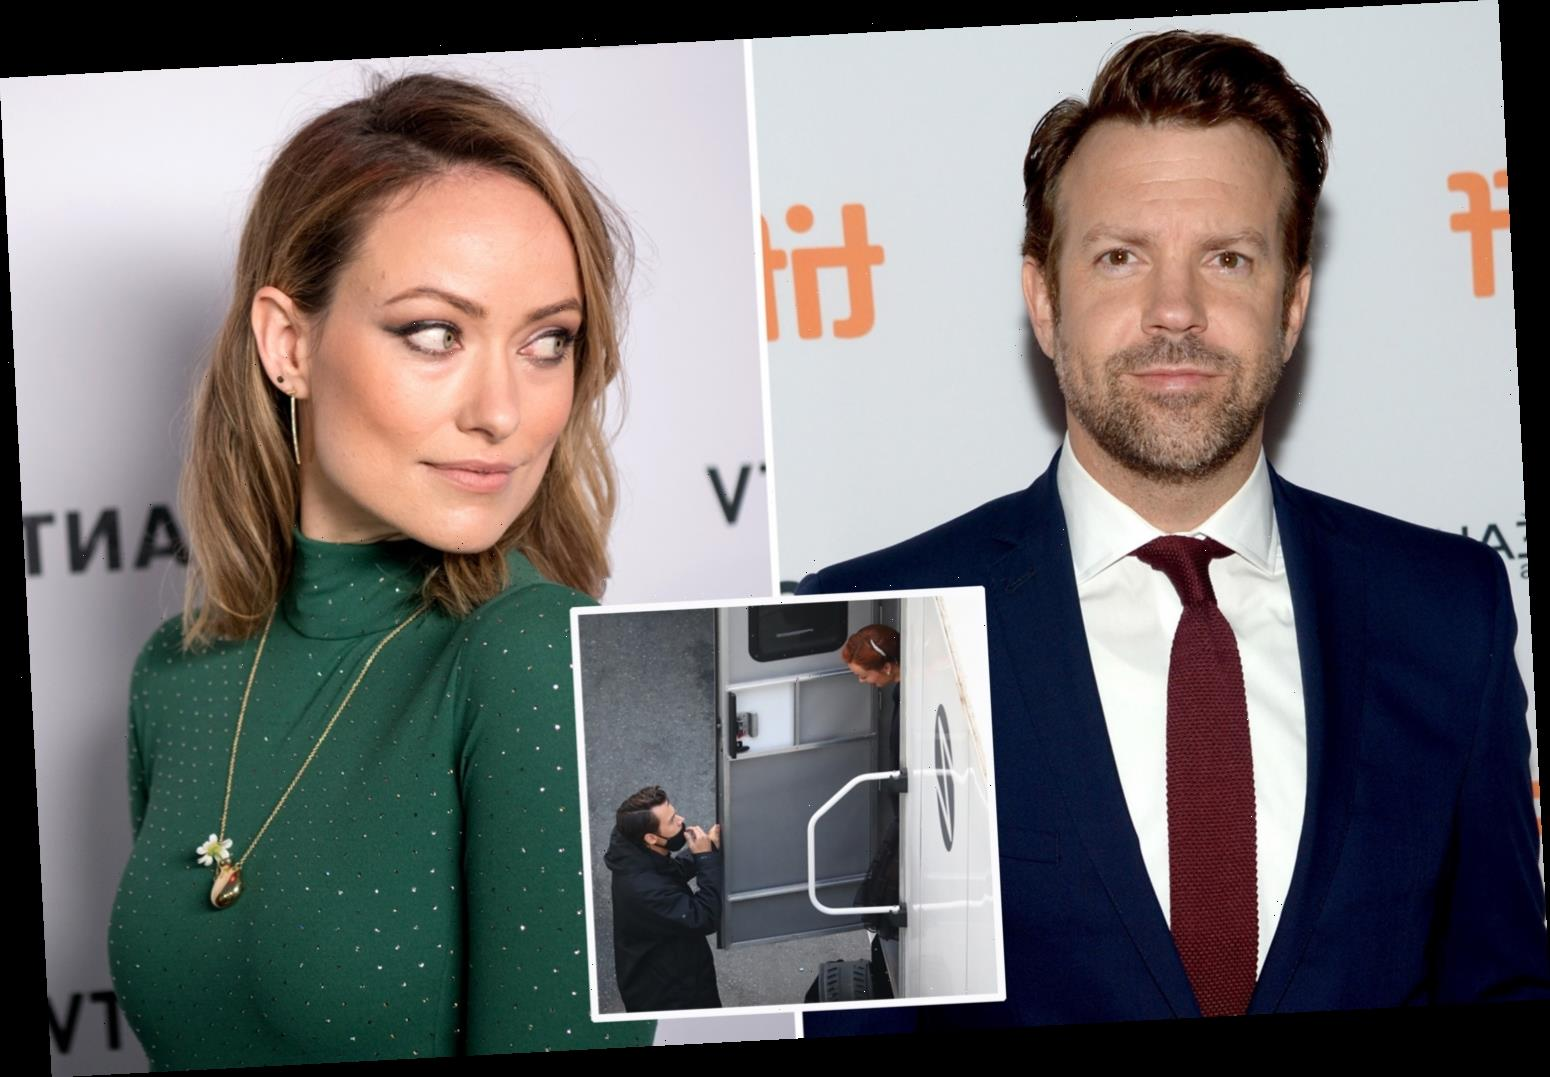 Olivia Wilde 'wanted out' of relationship with Jason Sudeikis after meeting new boyfriend Harry Styles